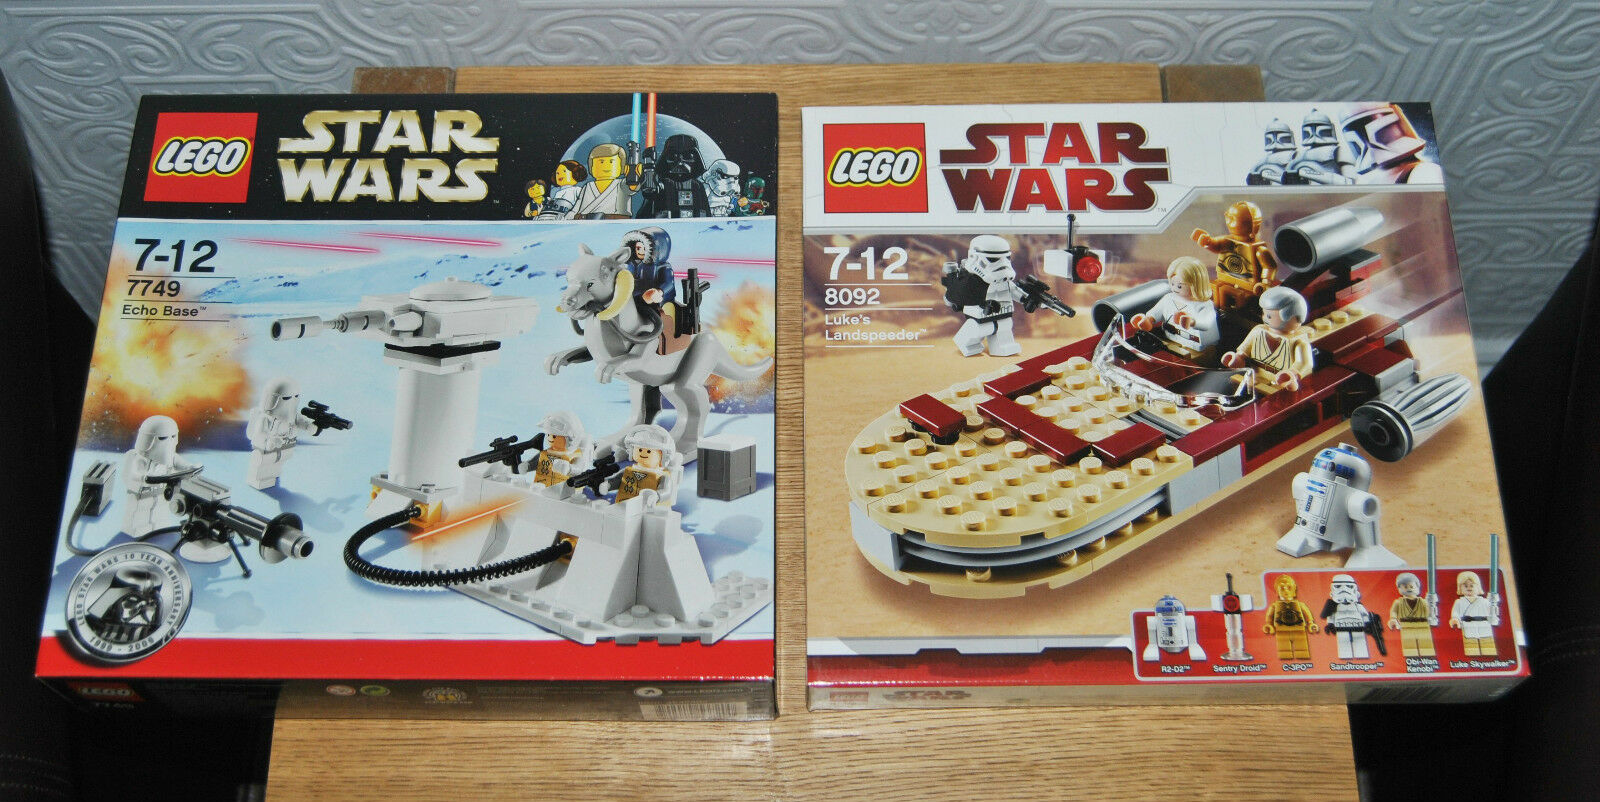 2 X Fab Lego Star Wars Sets. Luke's Landspeeder 8092 & Echo Base 7749. NEW